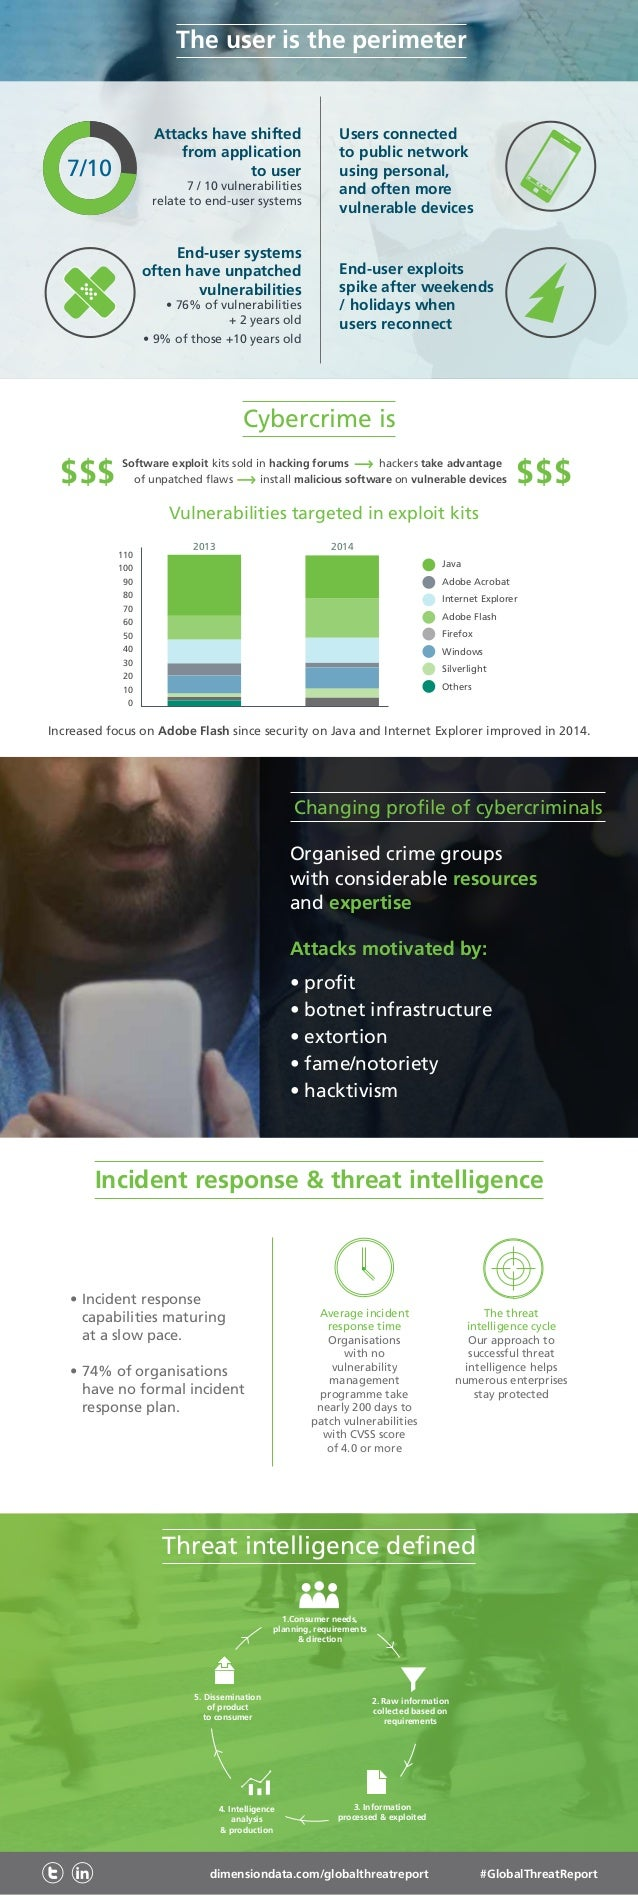 dimensiondata.com/globalthreatreport #GlobalThreatReport Threat intelligence defined 2. Raw information collected based on...